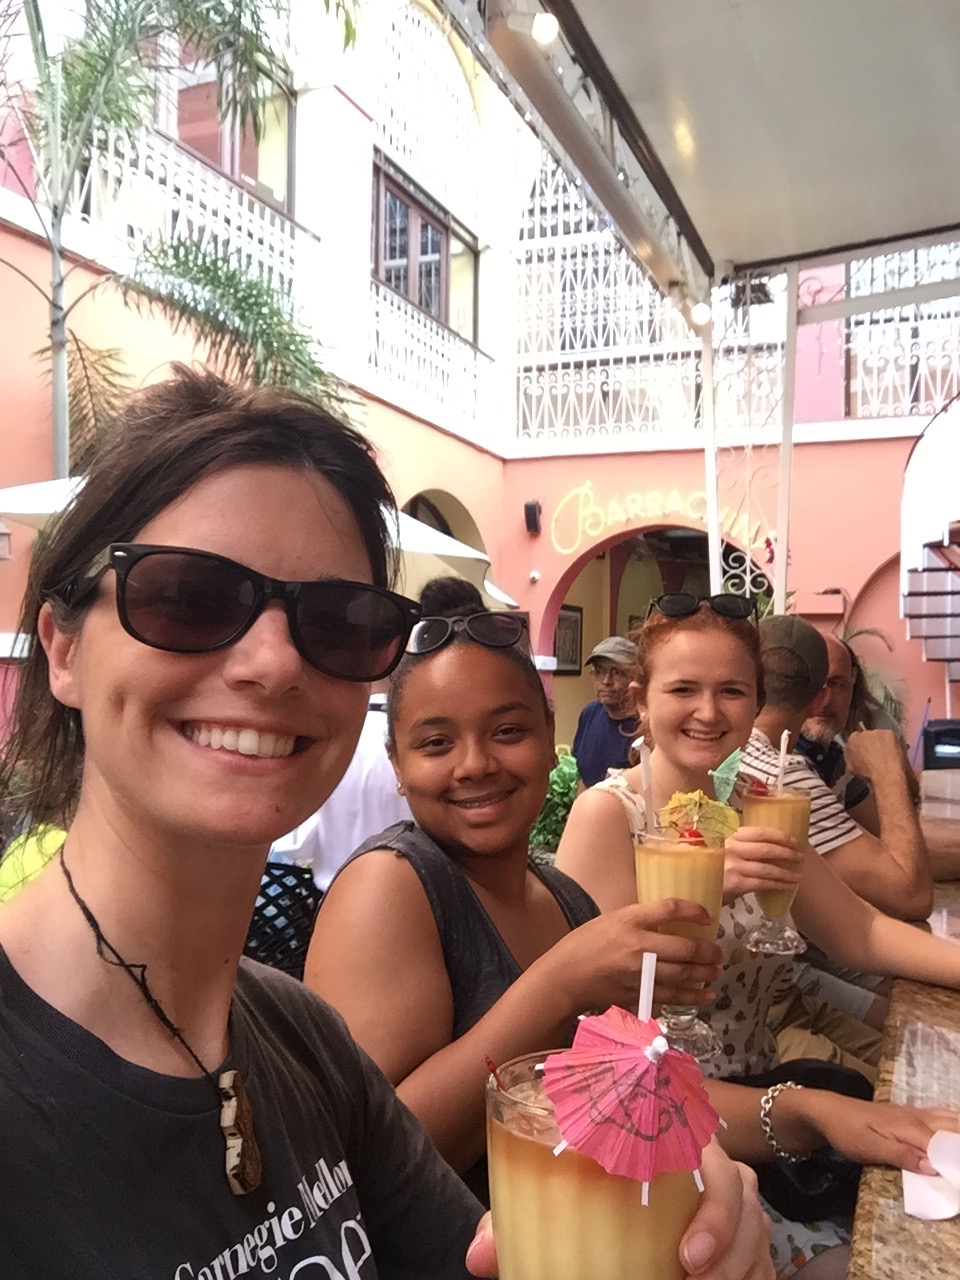 Enjoying Free Time in Old San Juan